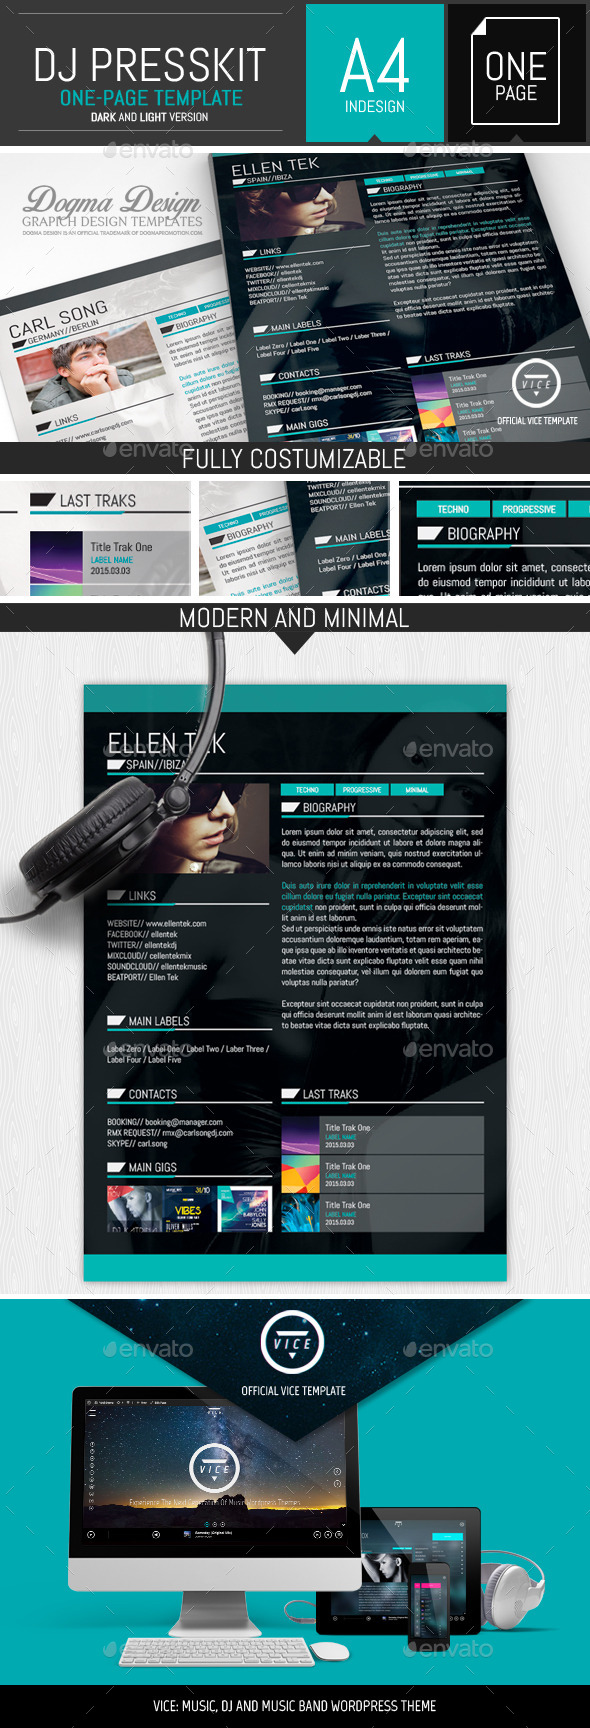 Vice: Dj / Musician OnePage Resume Indesign Template by DogmaDesign